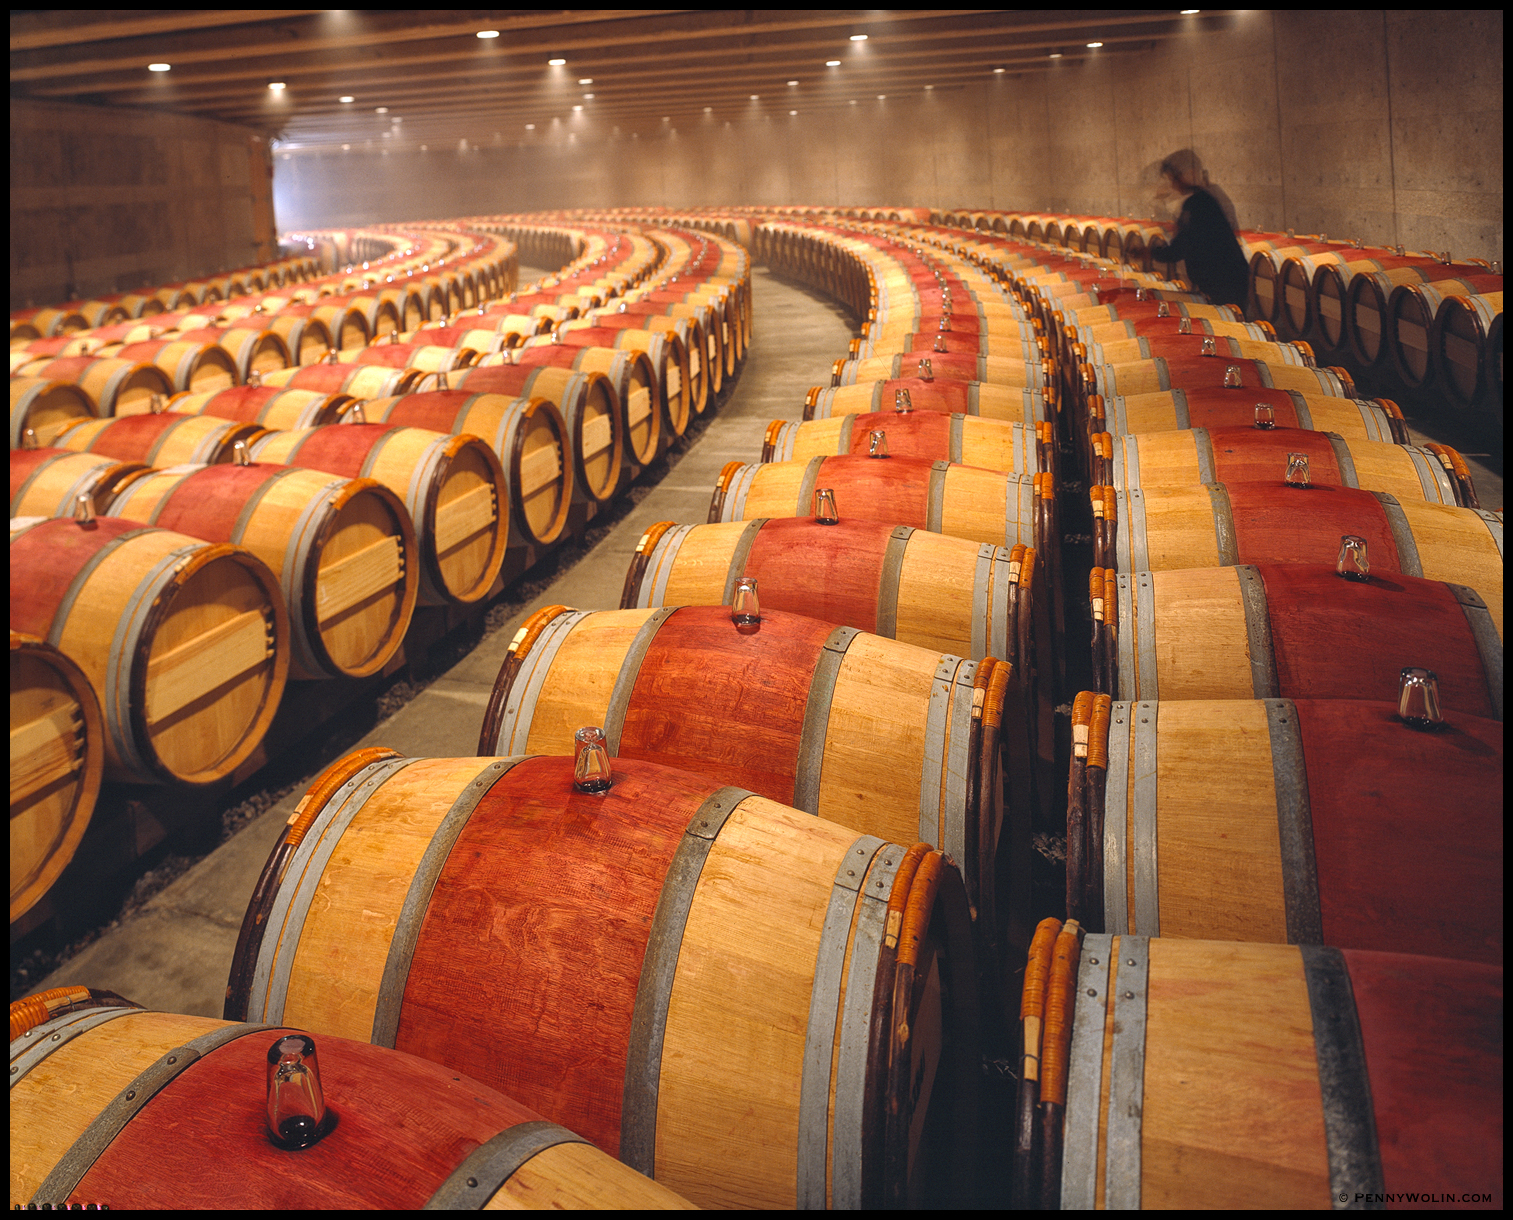 Opus One Cellar